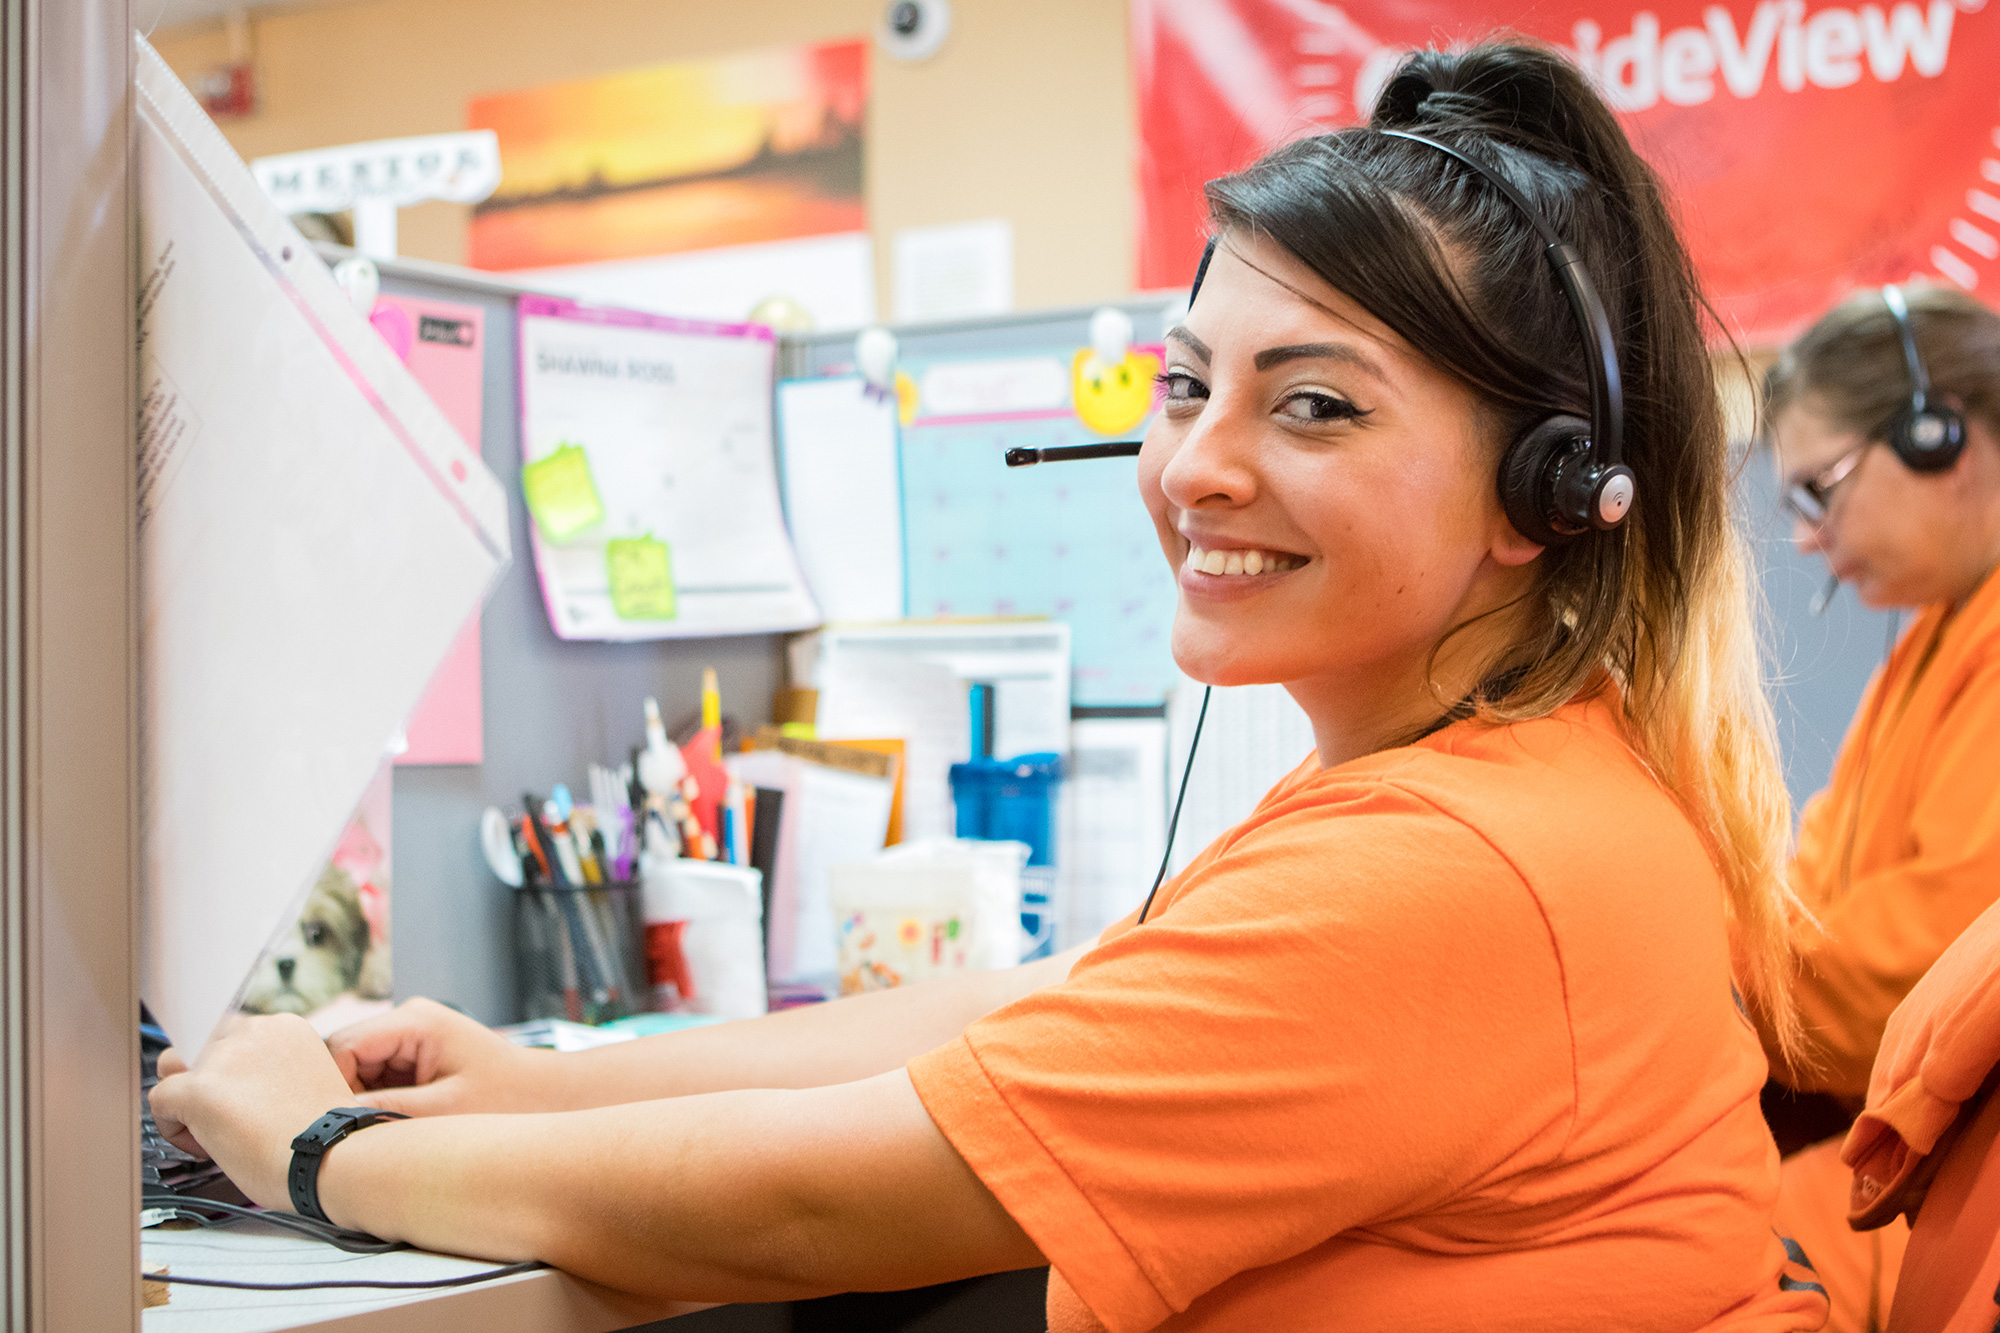 Televerde Foundation Woman Smiling at work